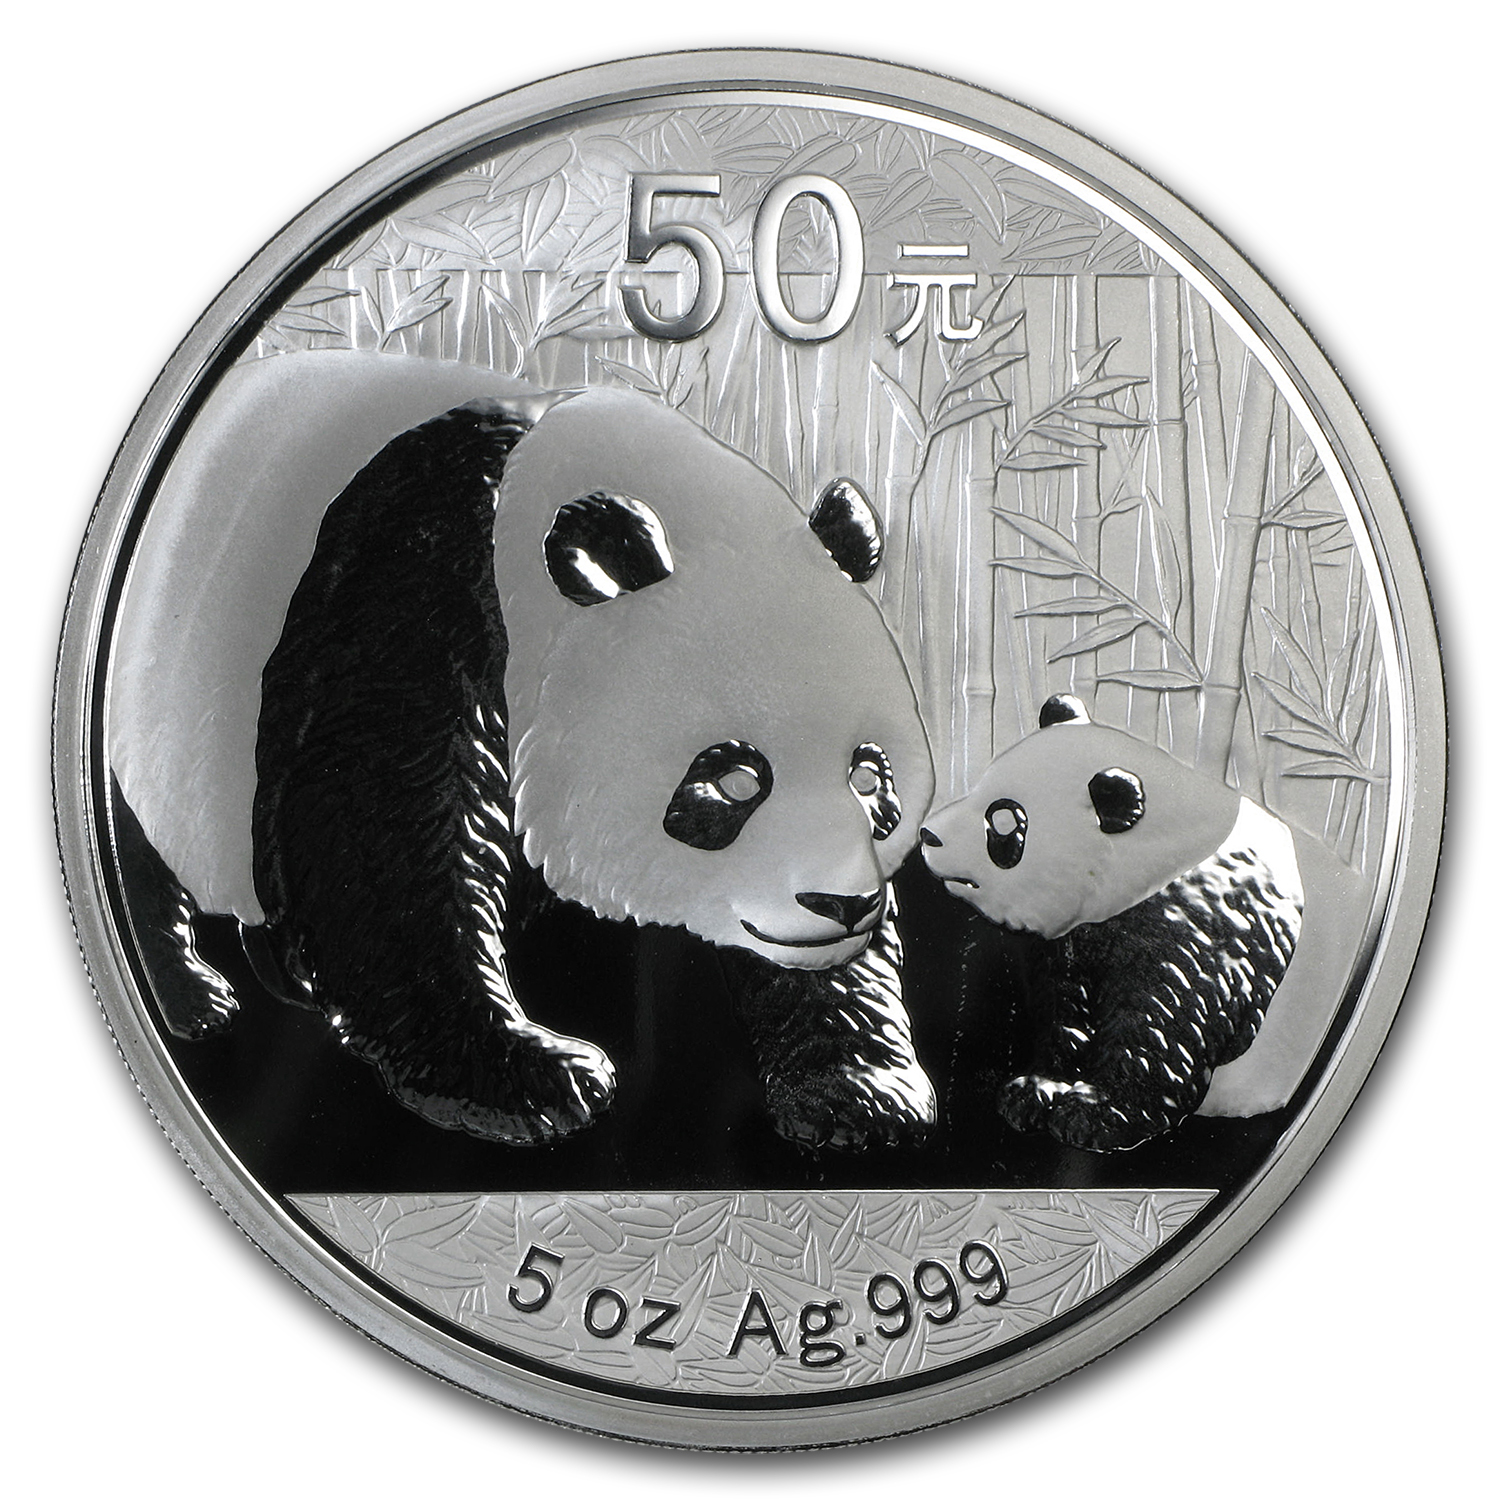 2011 5 oz Silver Chinese Panda Proof (w/Box & COA)